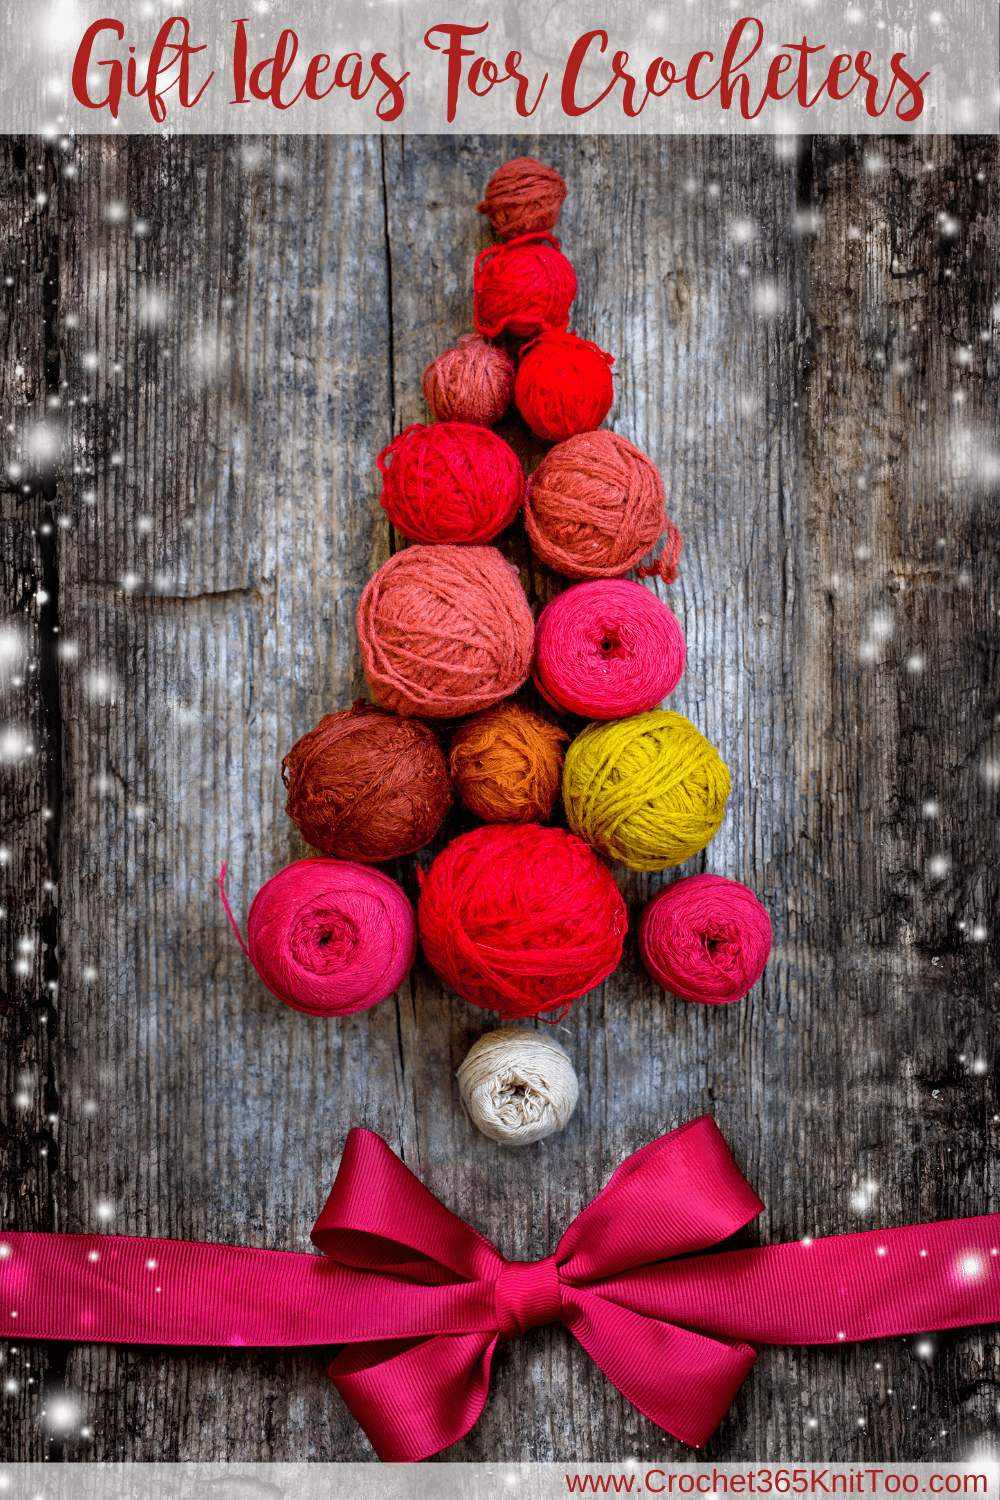 pink, red and green yarn balls in a tree shape with a pink bow